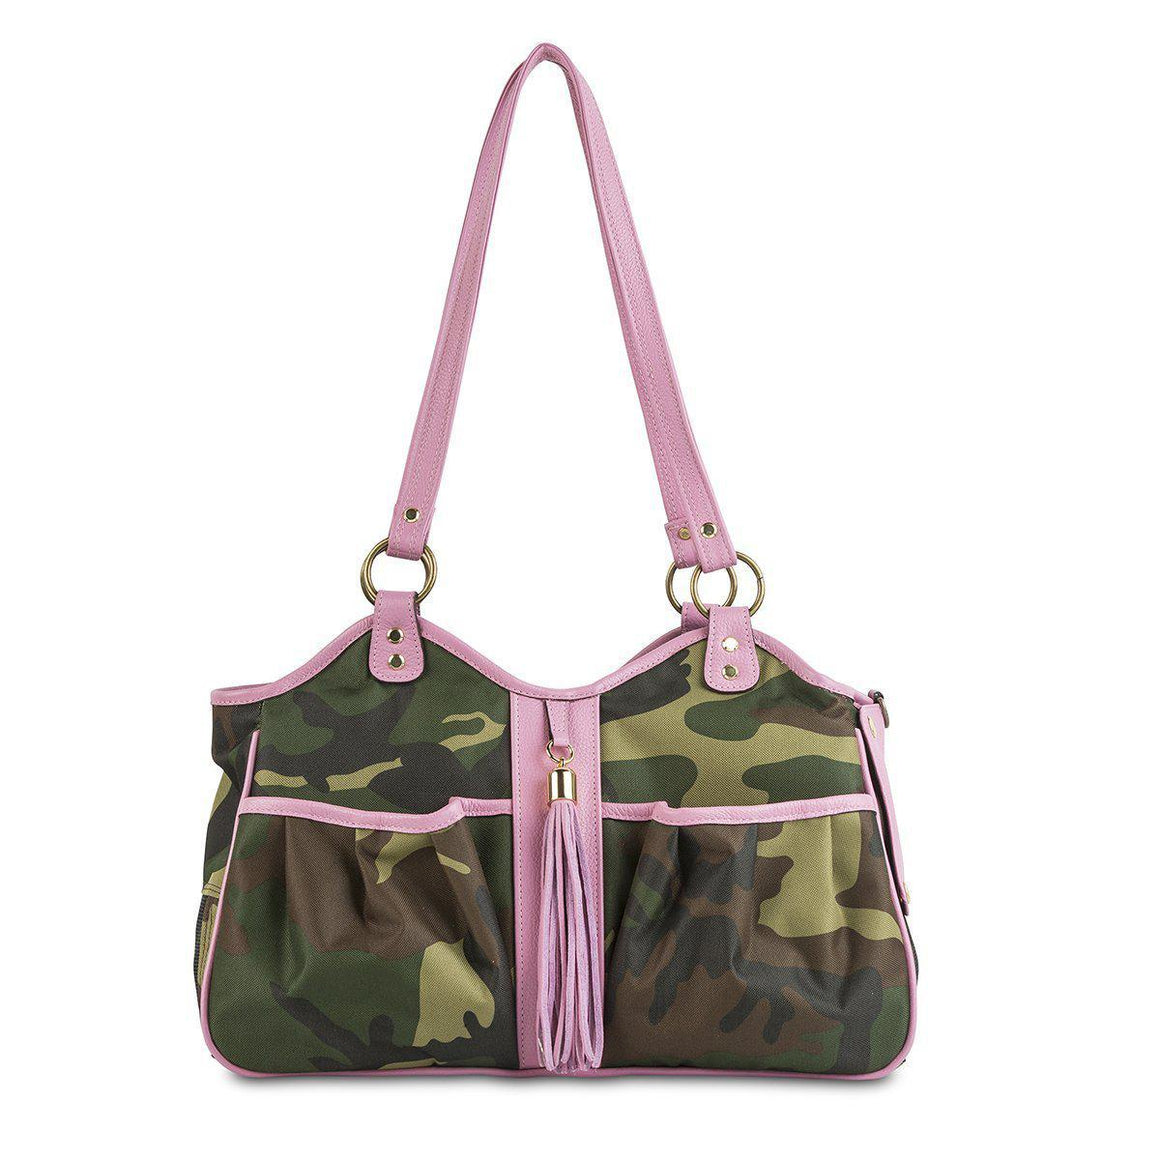 Petote Metro Bag Couture Collection - Camo With Pink Leather Trim & Tassel